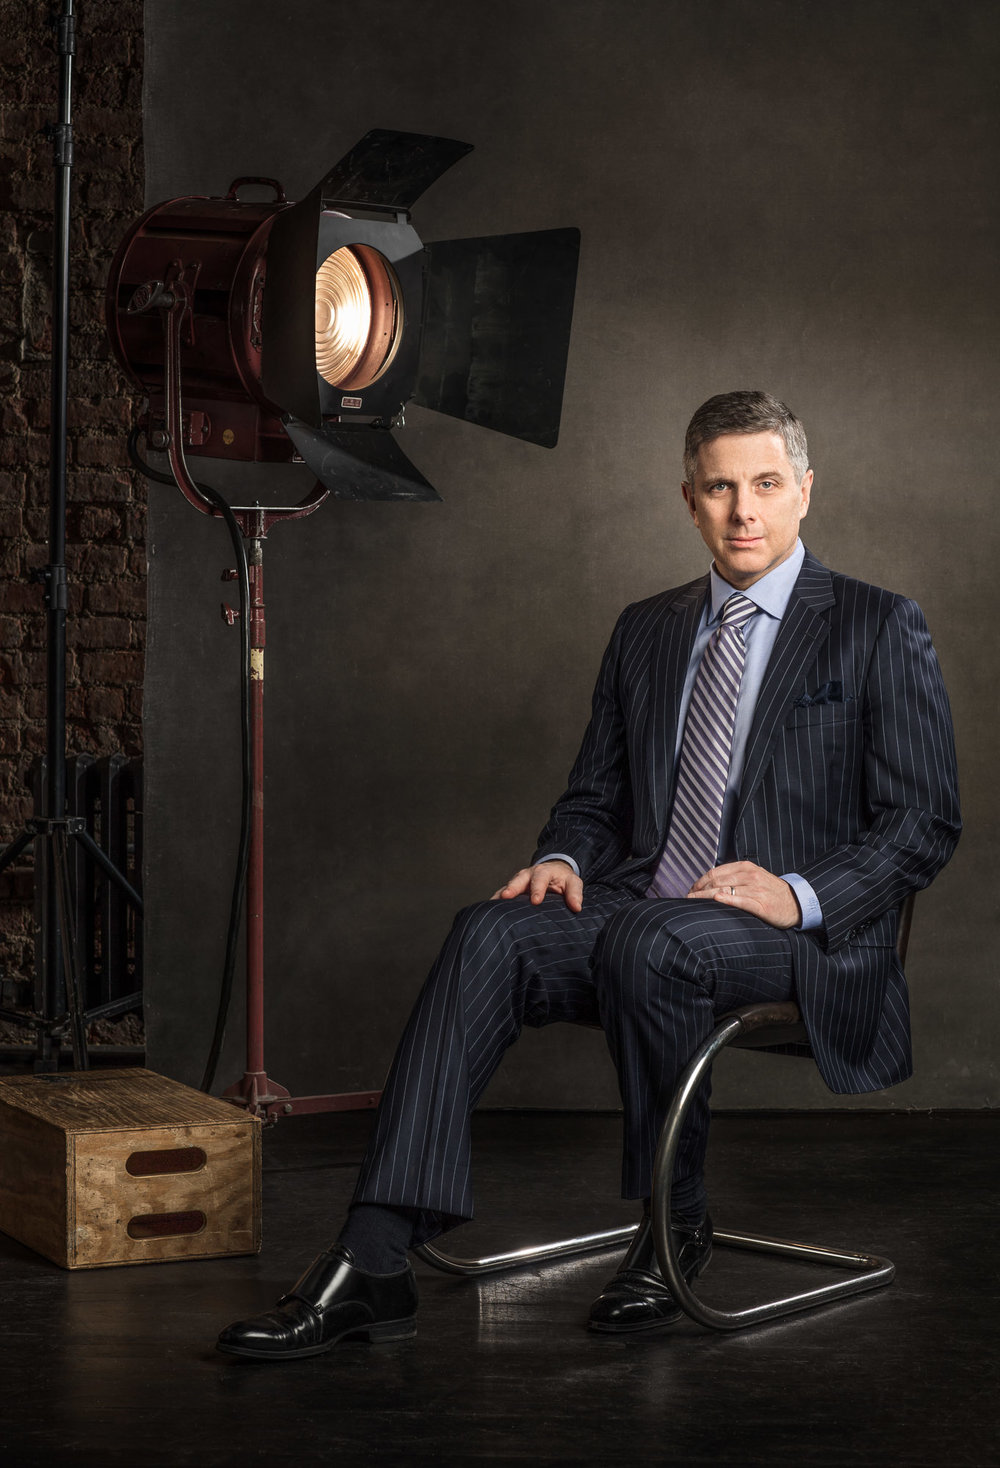 todd-bates-photo_corporate-photography_lawyer-portrait2.jpg